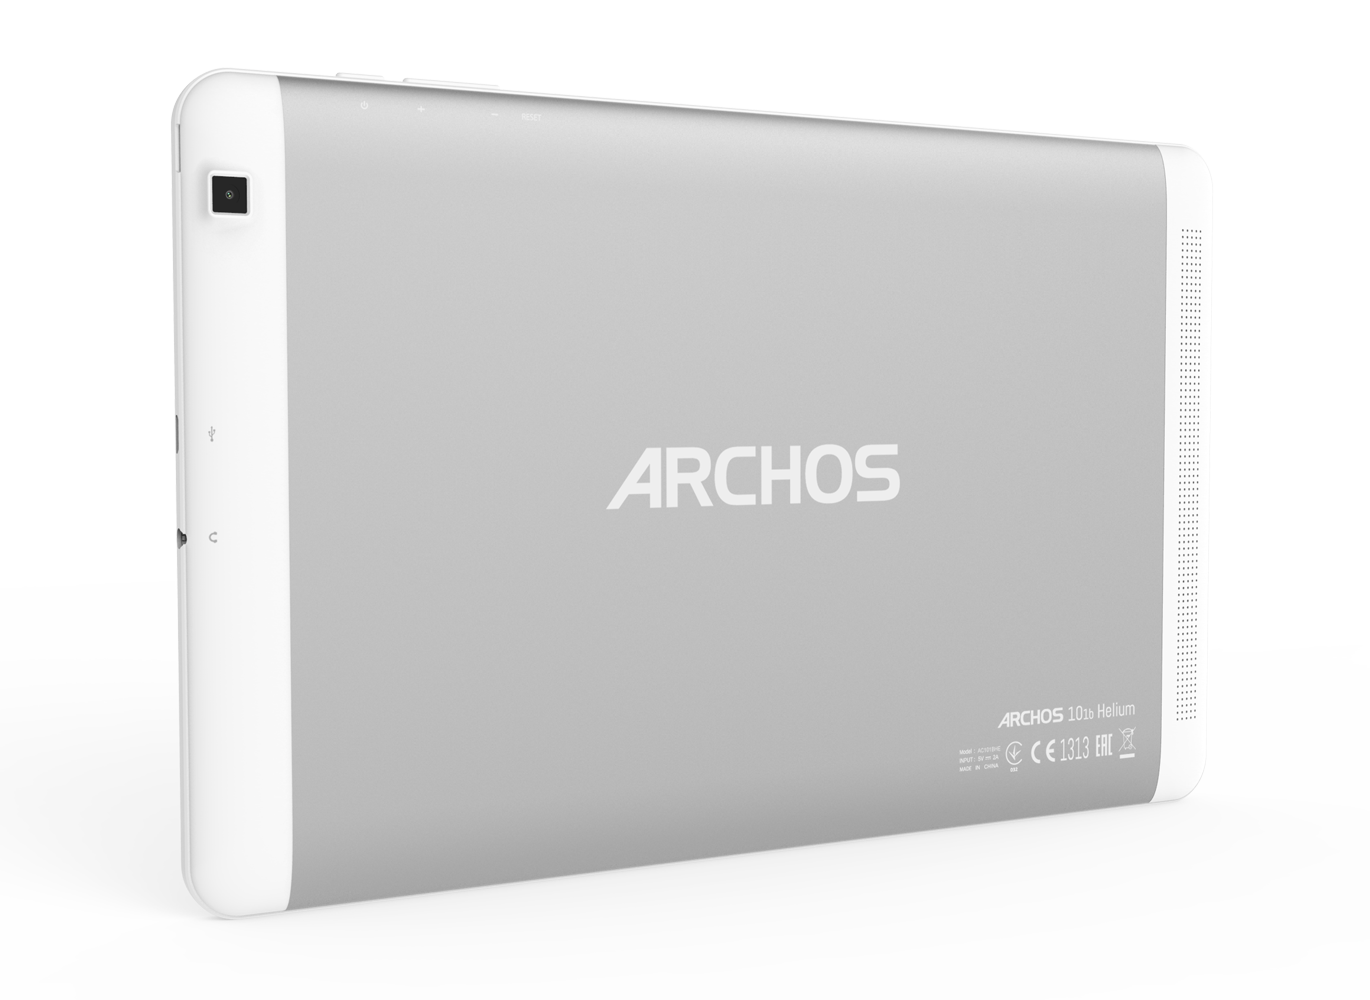 archos 101b helium tablets darstellung. Black Bedroom Furniture Sets. Home Design Ideas